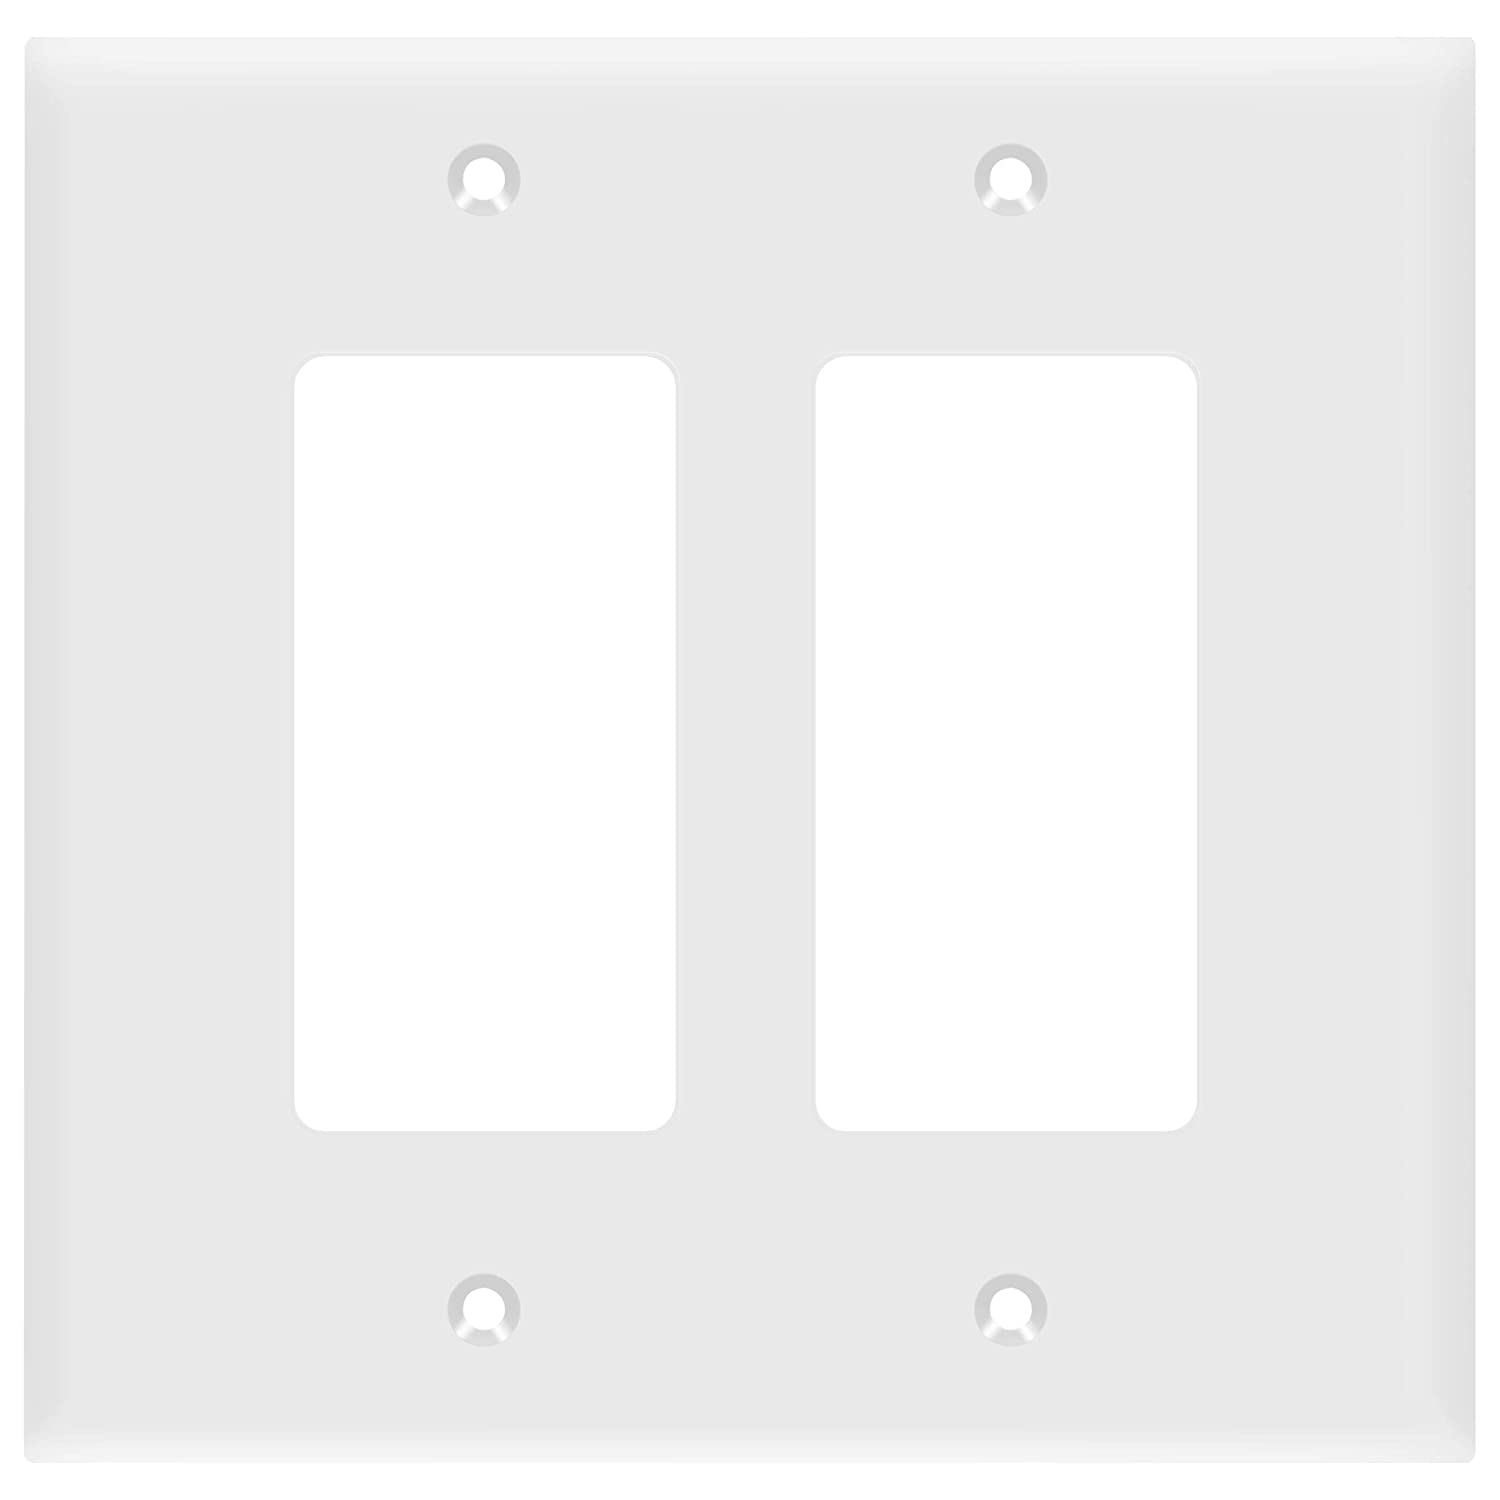 "ENERLITES Decorator Light Switch or Receptacle Outlet Wall Plate, Mid-Size 2-Gang 4.88"" x 4.92"", Polycarbonate Thermoplastic, UL Listed, 8832M-W, White"